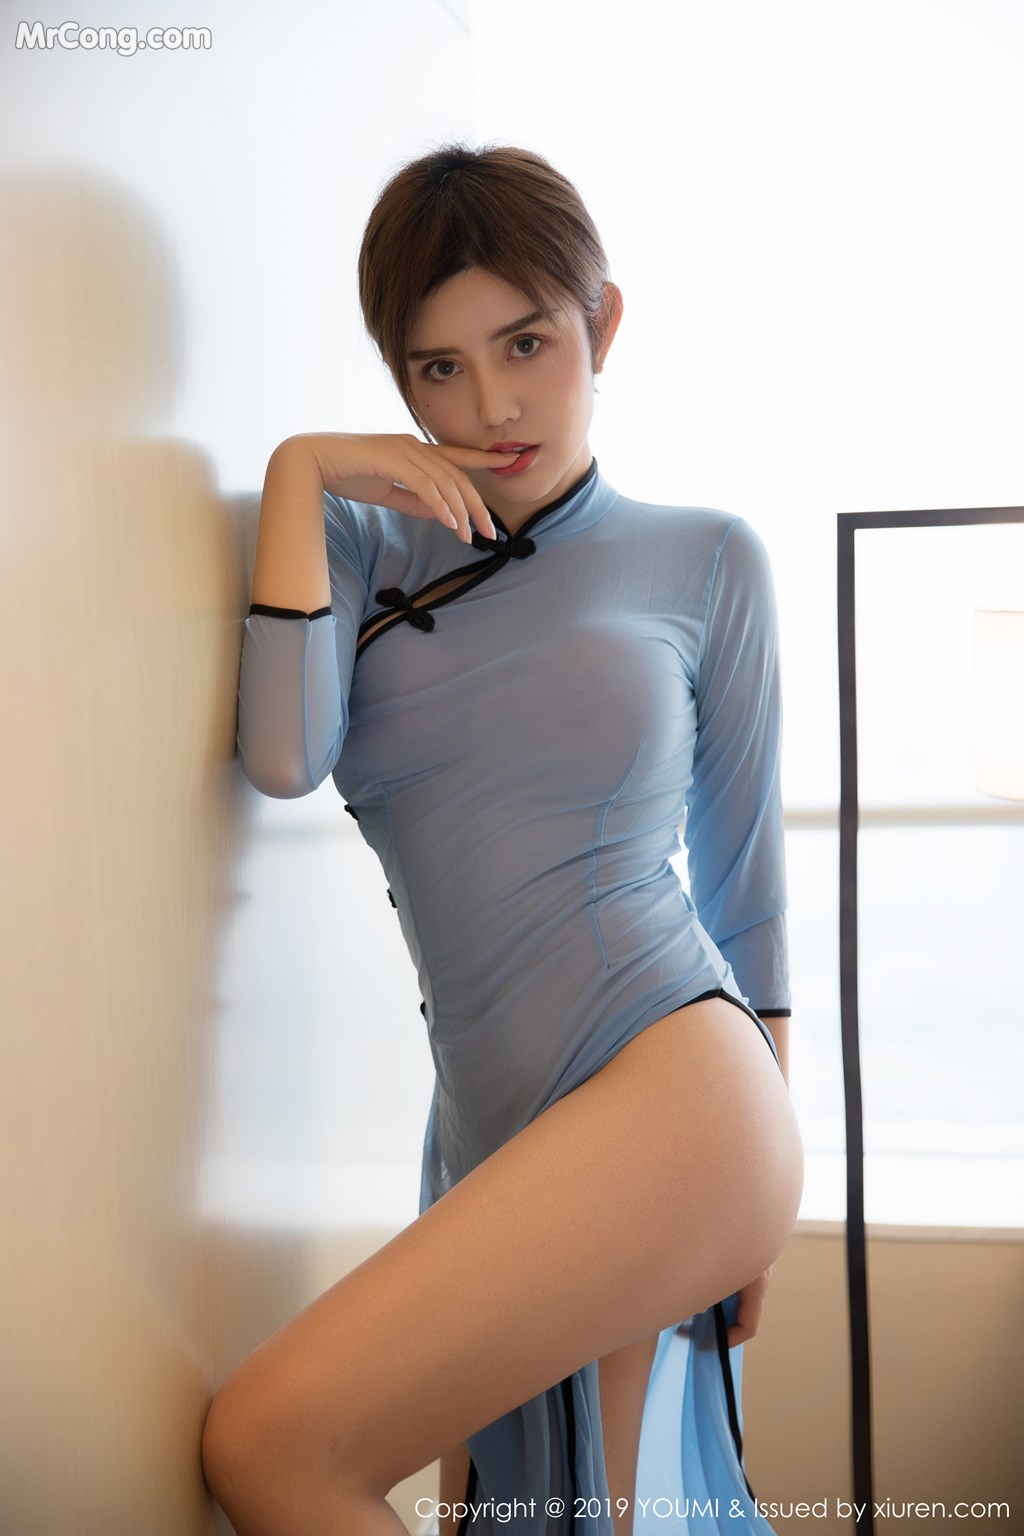 Image YouMi-Vol.353-Cris-MrCong.com-010 in post YouMi Vol.353: Cris_卓娅祺 (51 ảnh)